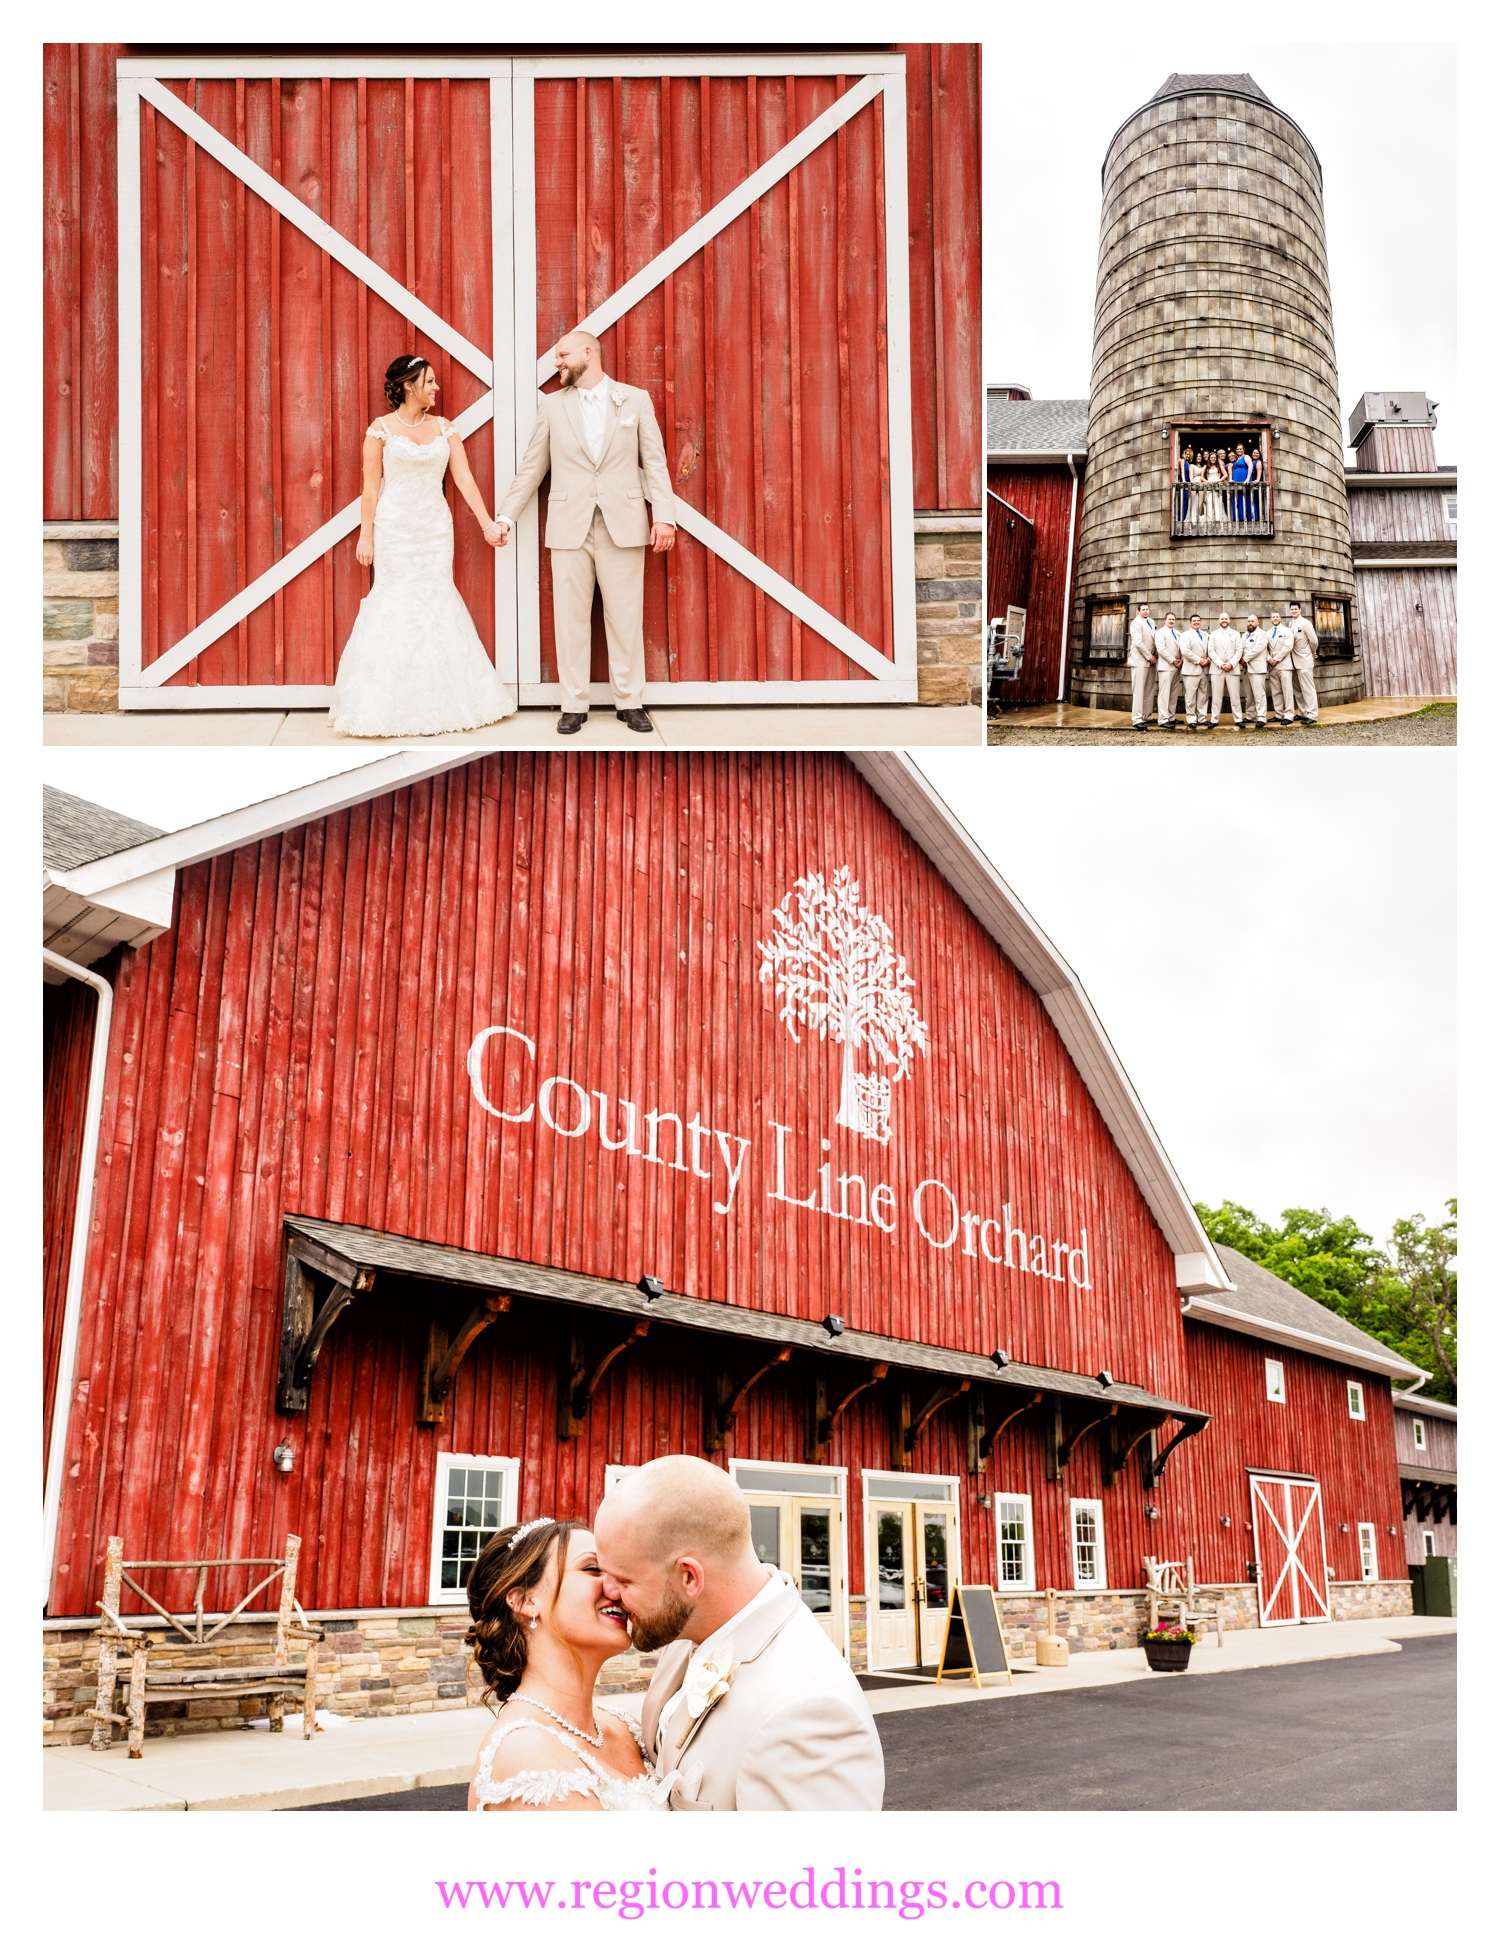 Fun wedding photos at County Line Orchard in Hobart, Indiana.